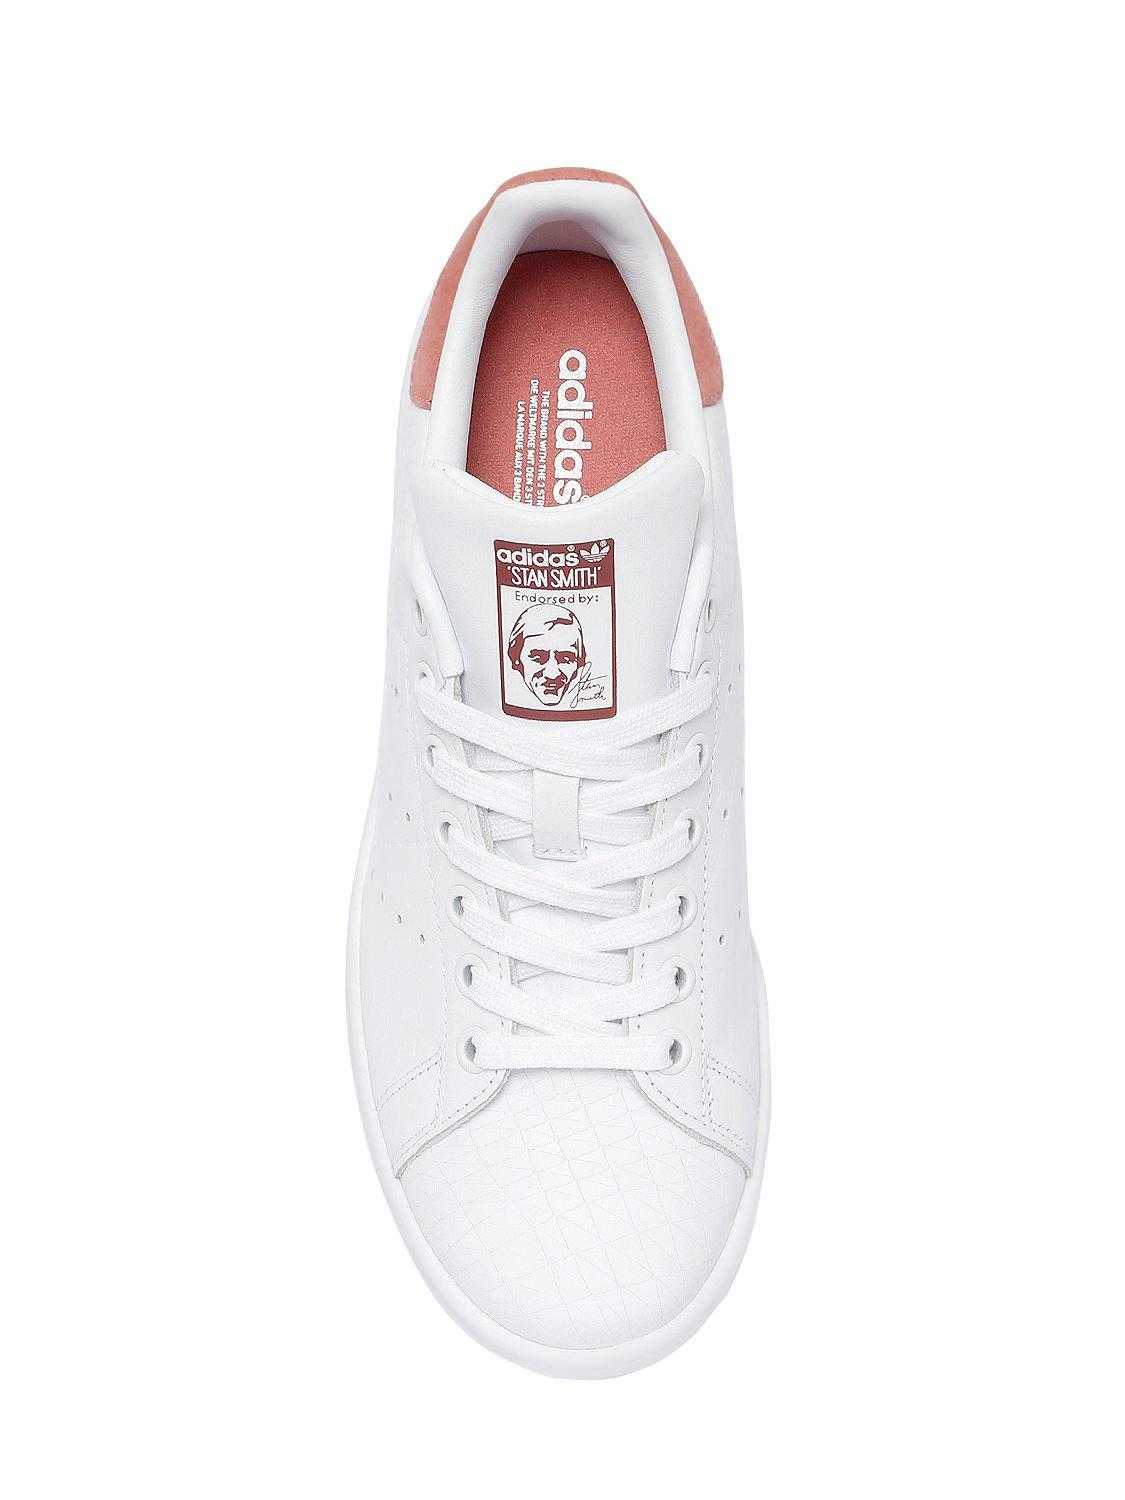 uk availability 9b891 5515a ireland gallery. previously sold at luisa via roma womens adidas stan smith  067f2 541fe